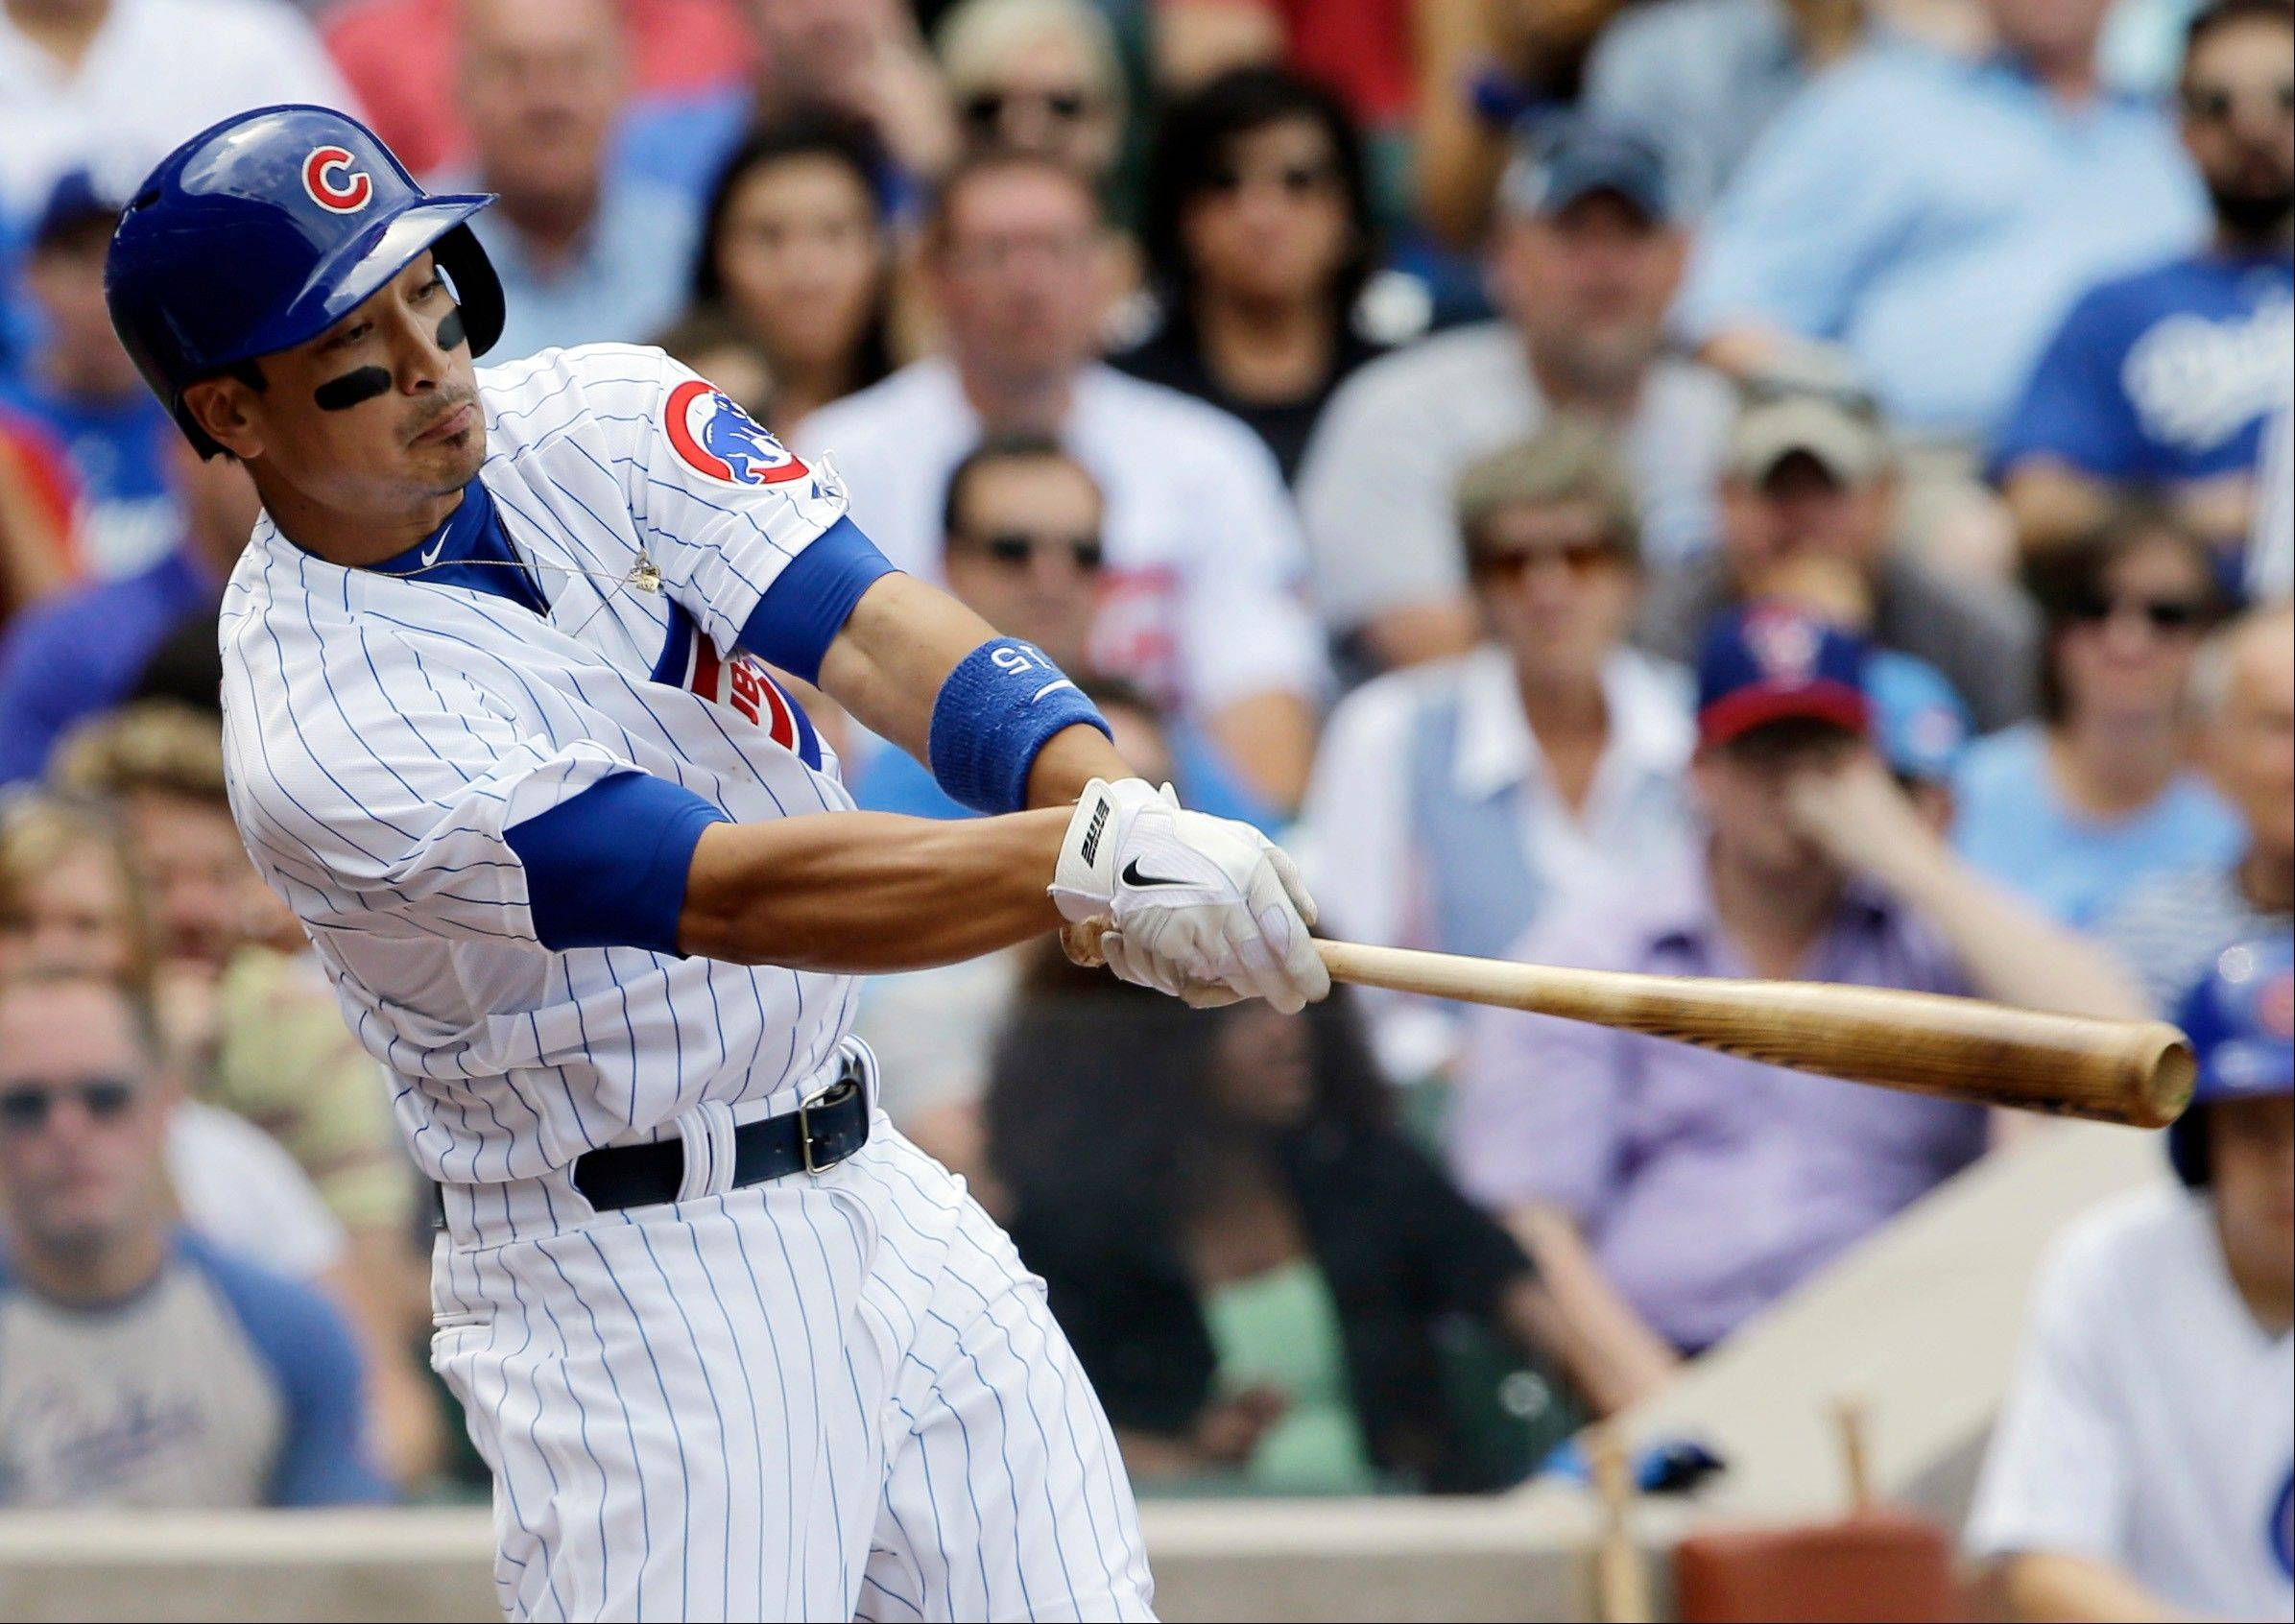 Cubs avoid arbitration with second baseman Barney